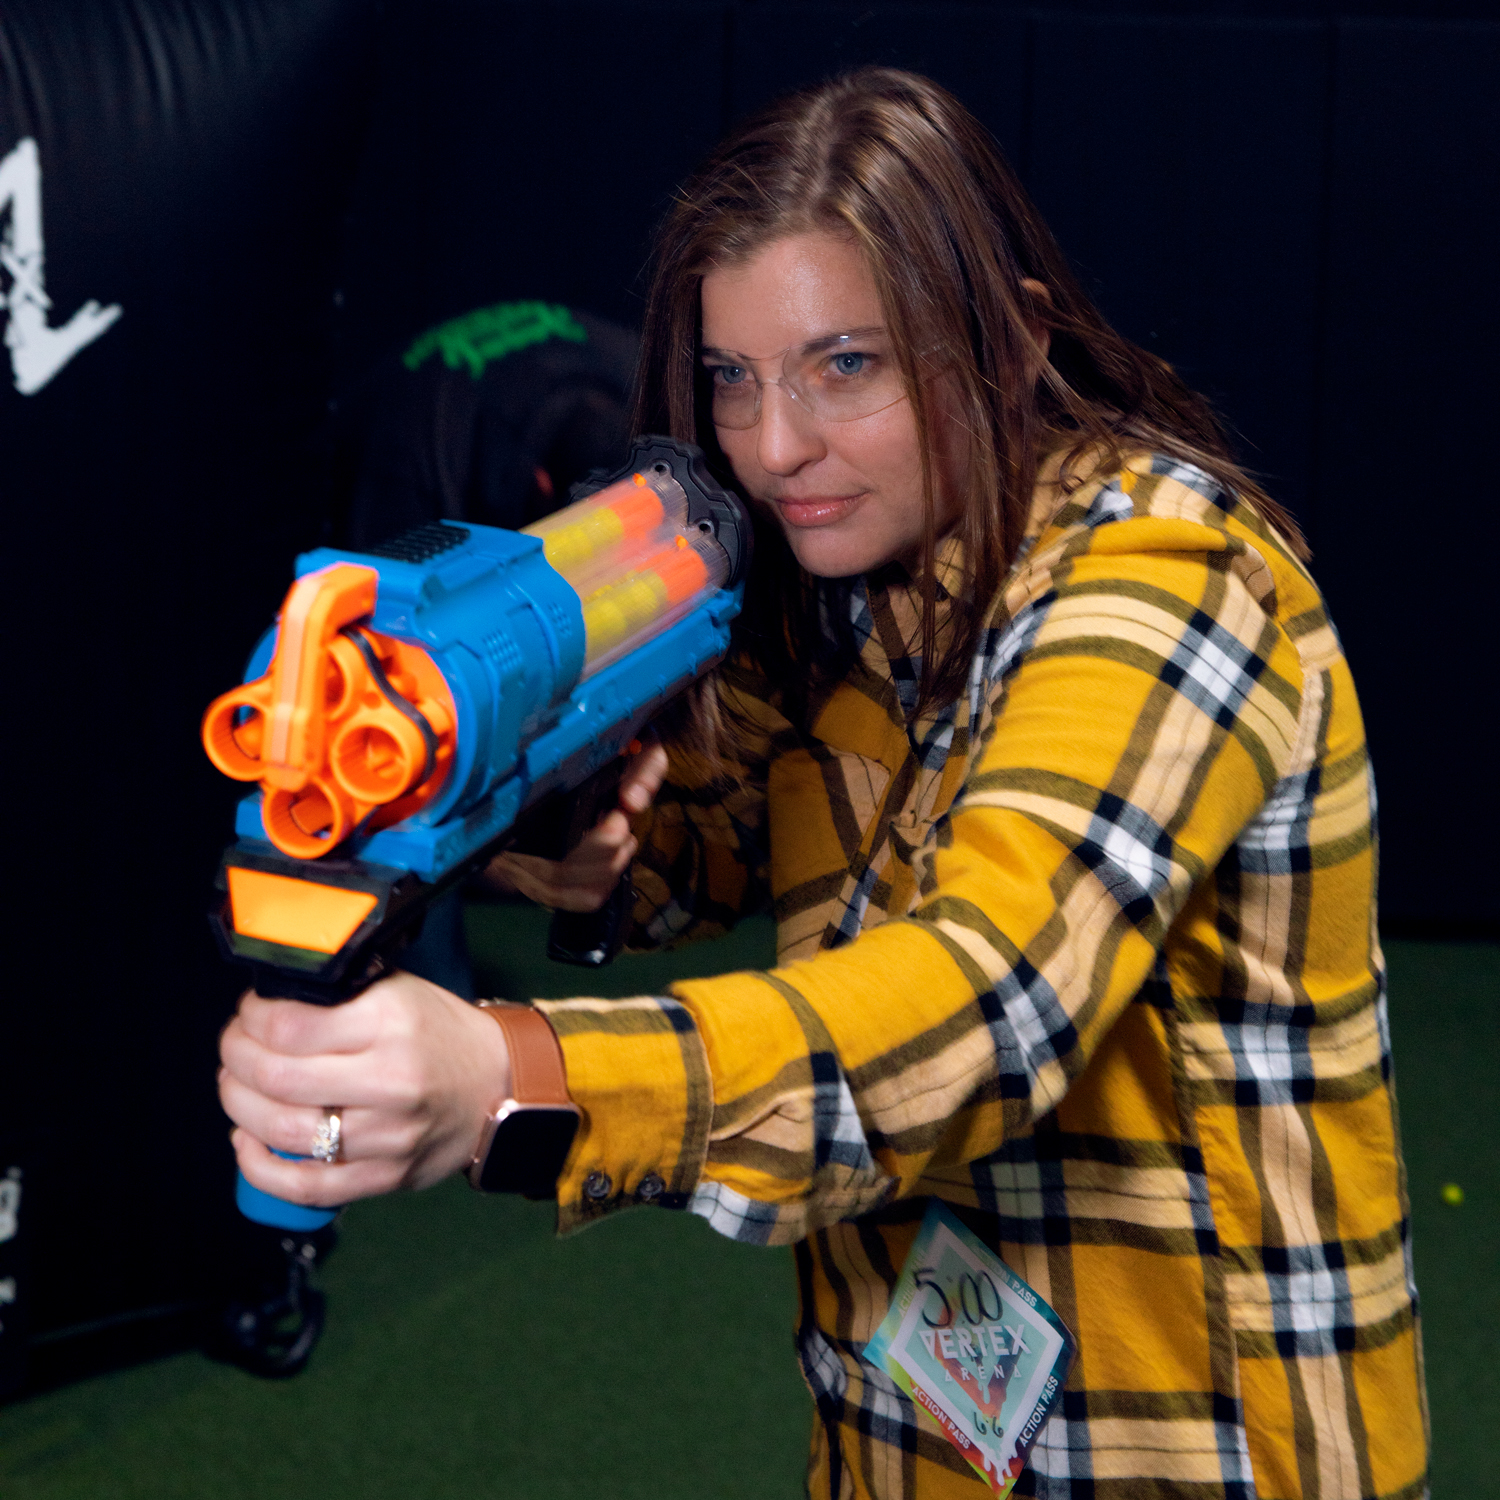 nerfgirlplaid